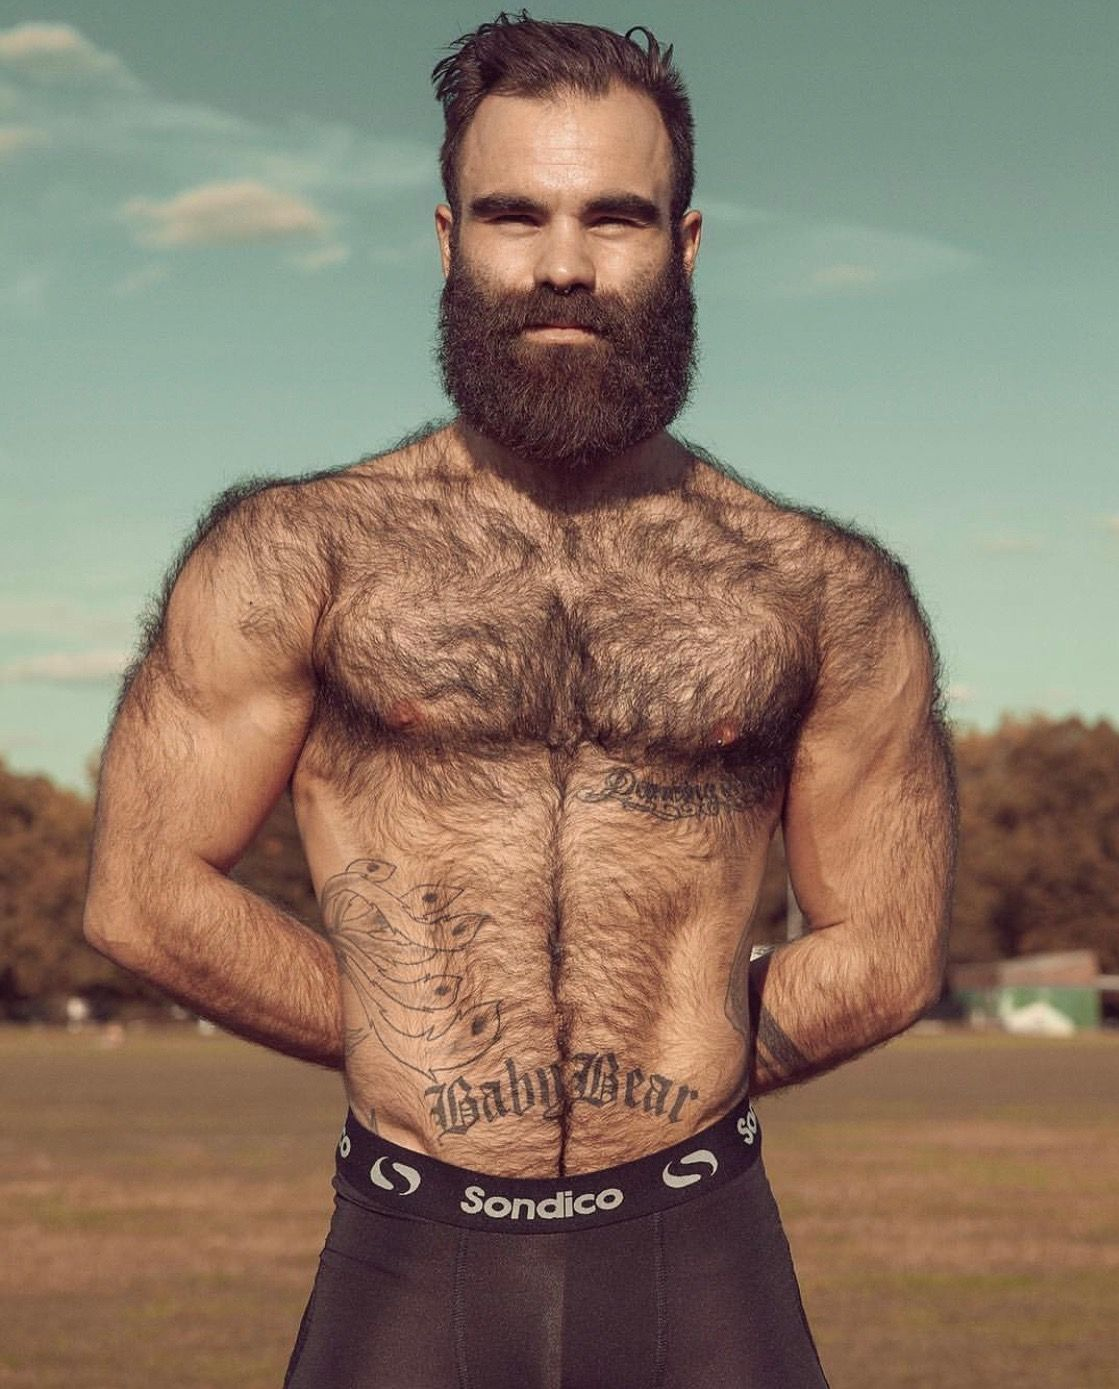 Pin on a hairy perfect body